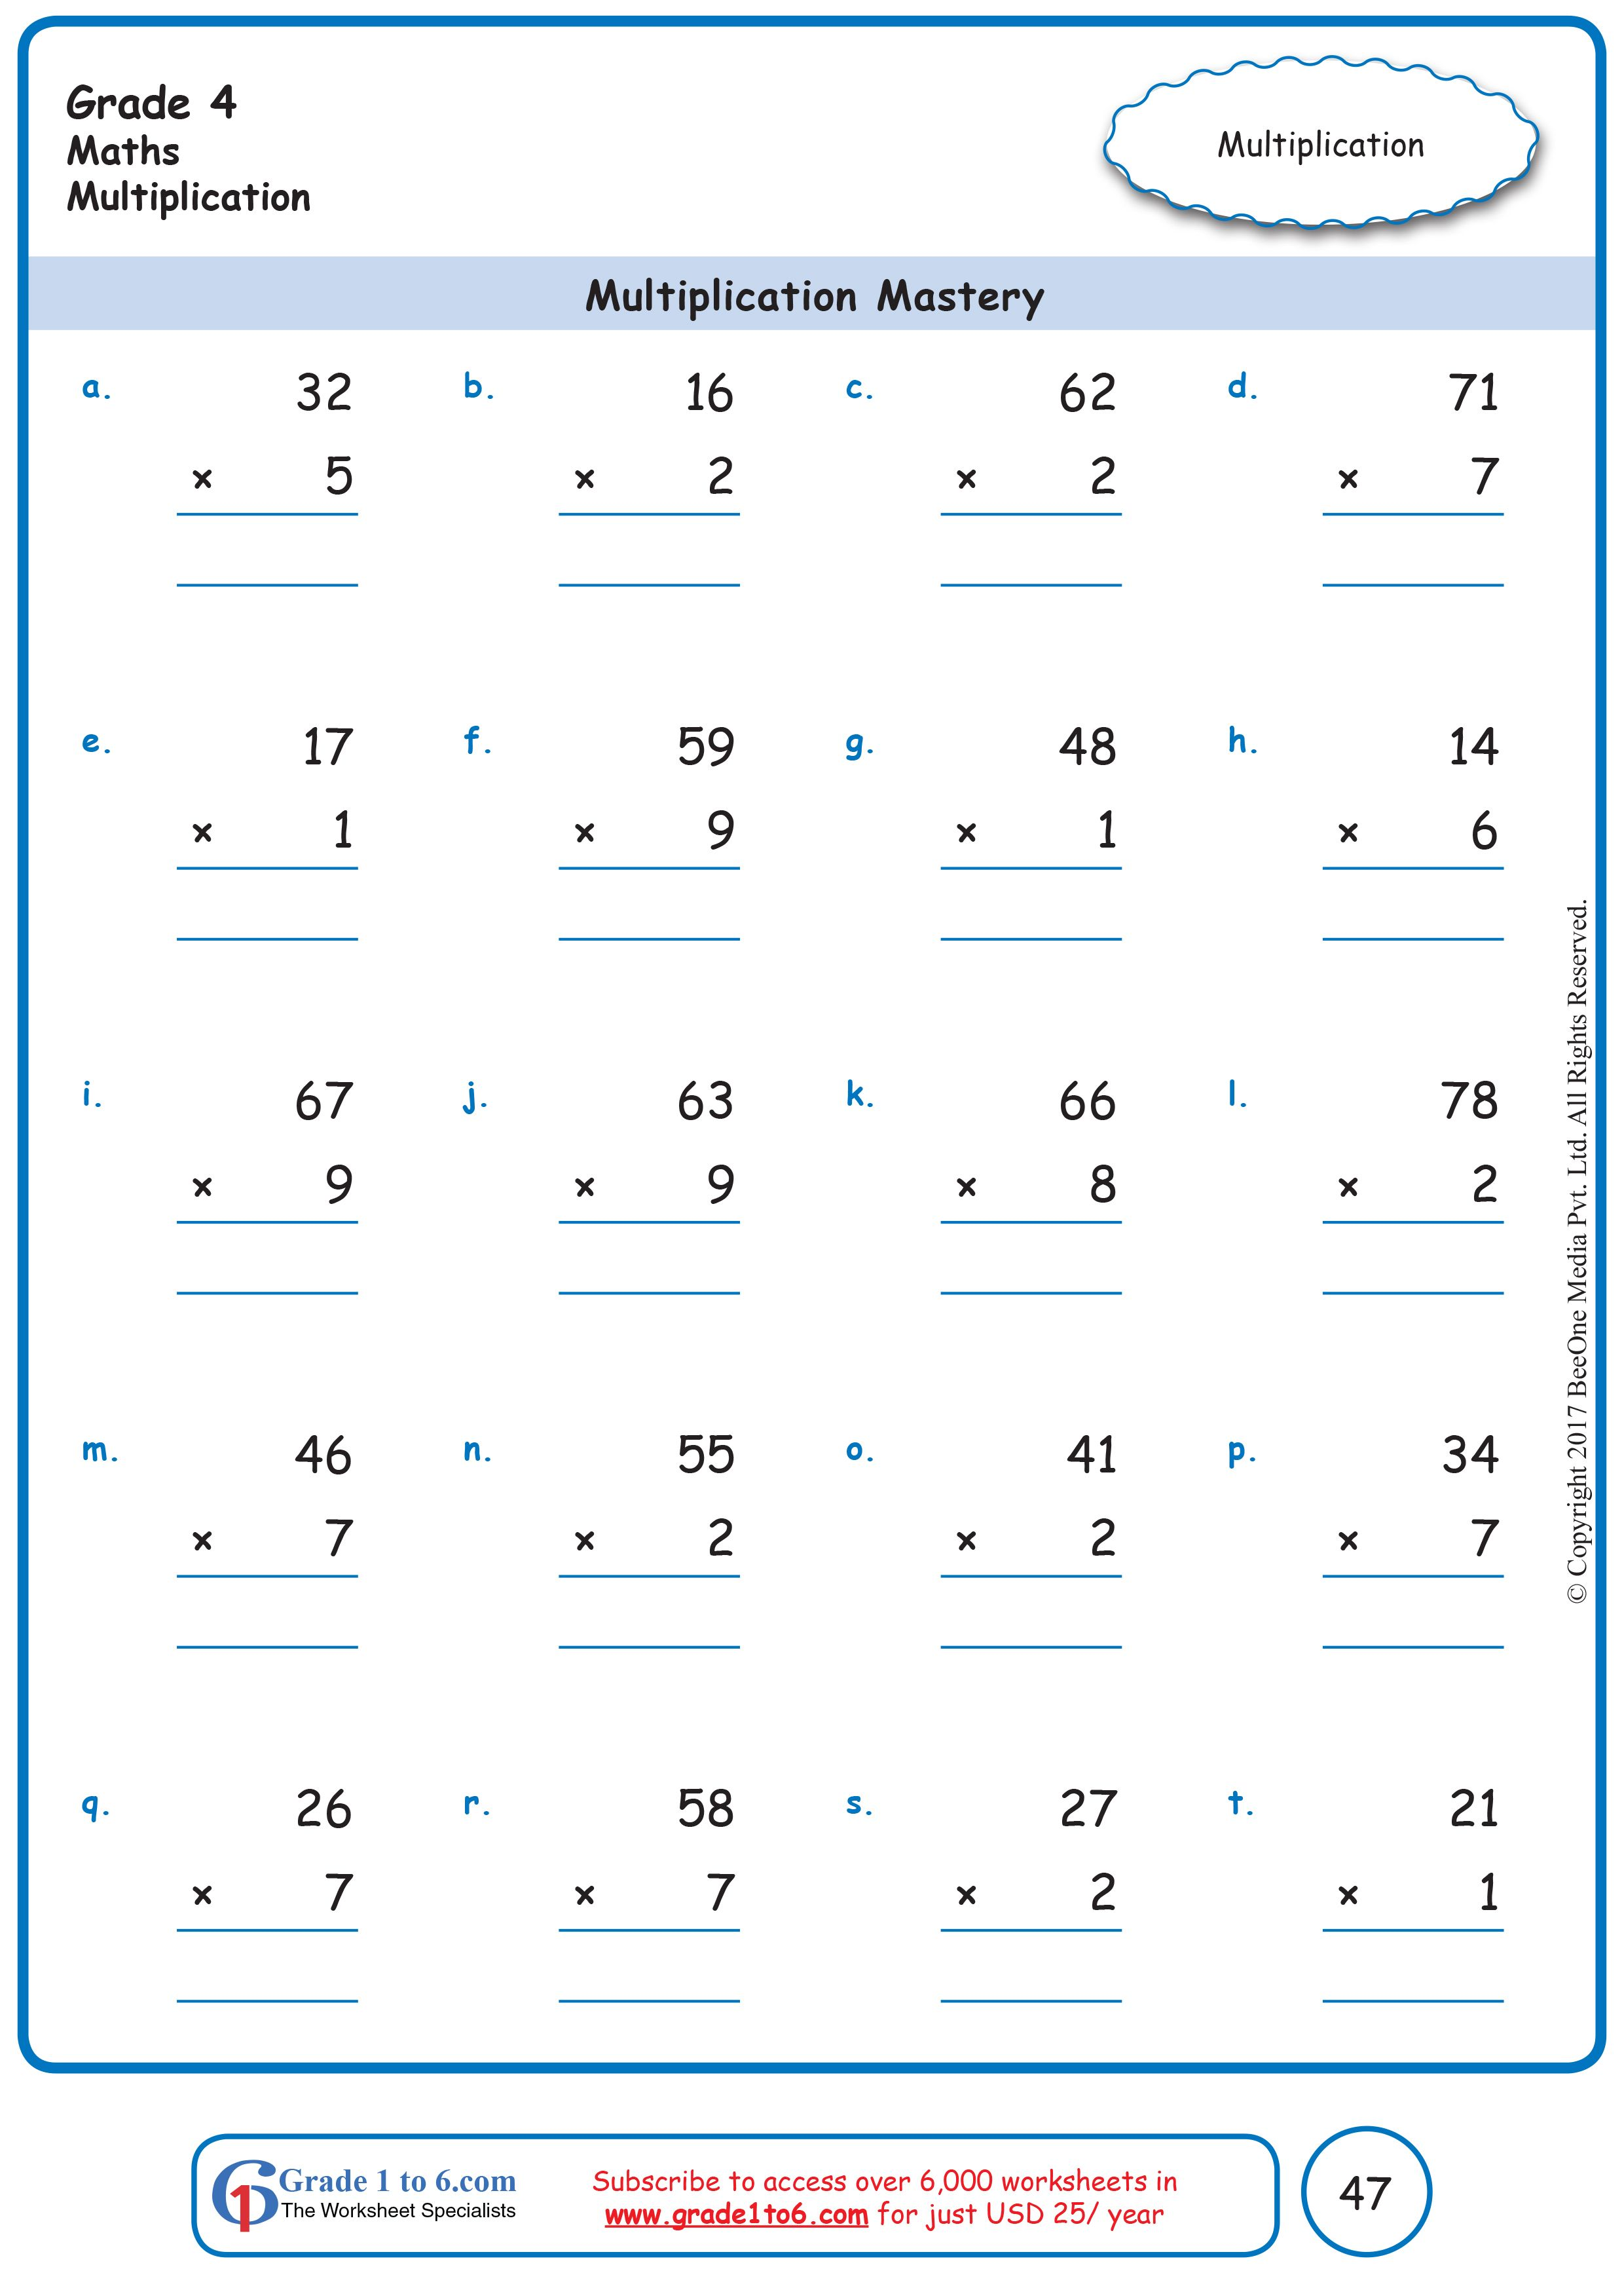 These are the BEST Math worksheets for Grade 1 through